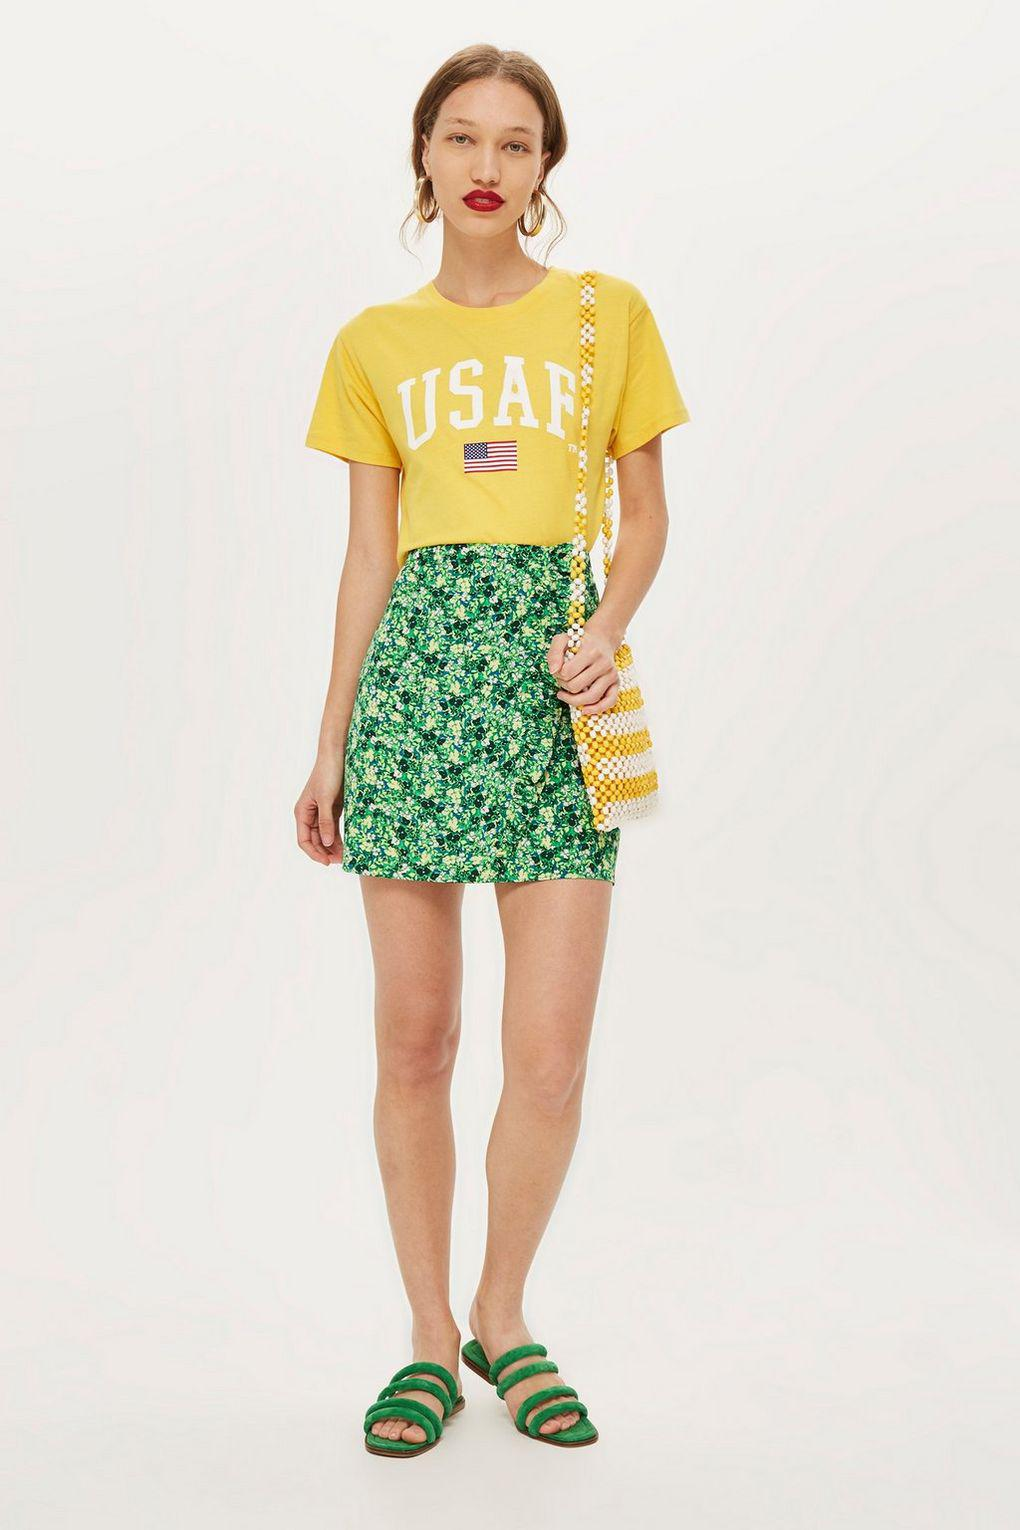 Topshop Womens Tall Meadow Ruffle Mini Skirt - Shop For Sale Online Cheap Sale Latest Outlet Pay With Visa Enjoy For Sale iCAUlh